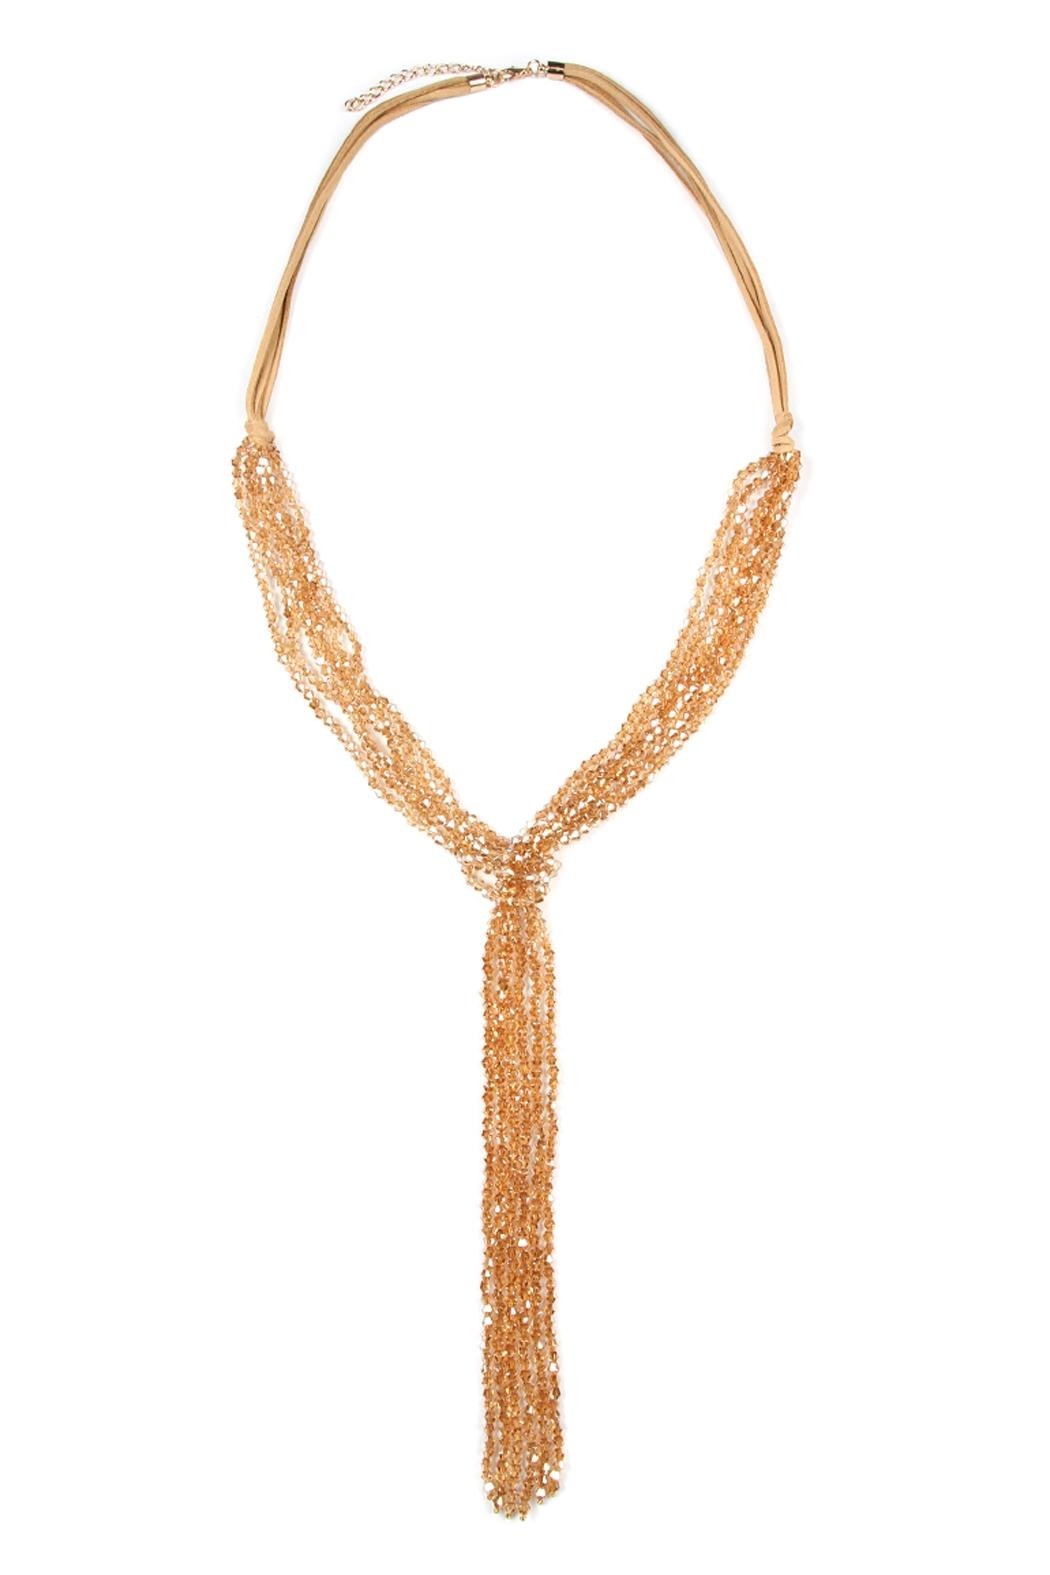 Riah Fashion Multistrand Rondelle-Beads-Necklace - Front Cropped Image